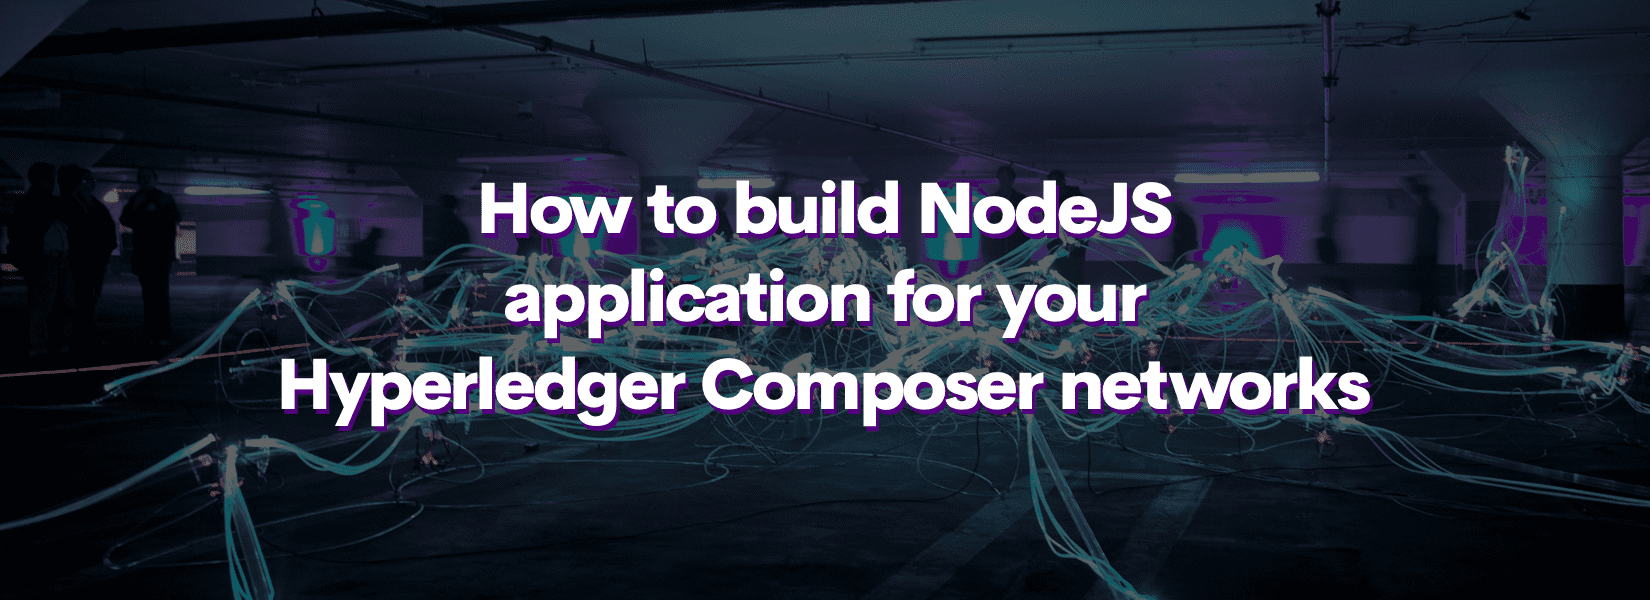 How to build NodeJS application for your Hyperledger Composer networks